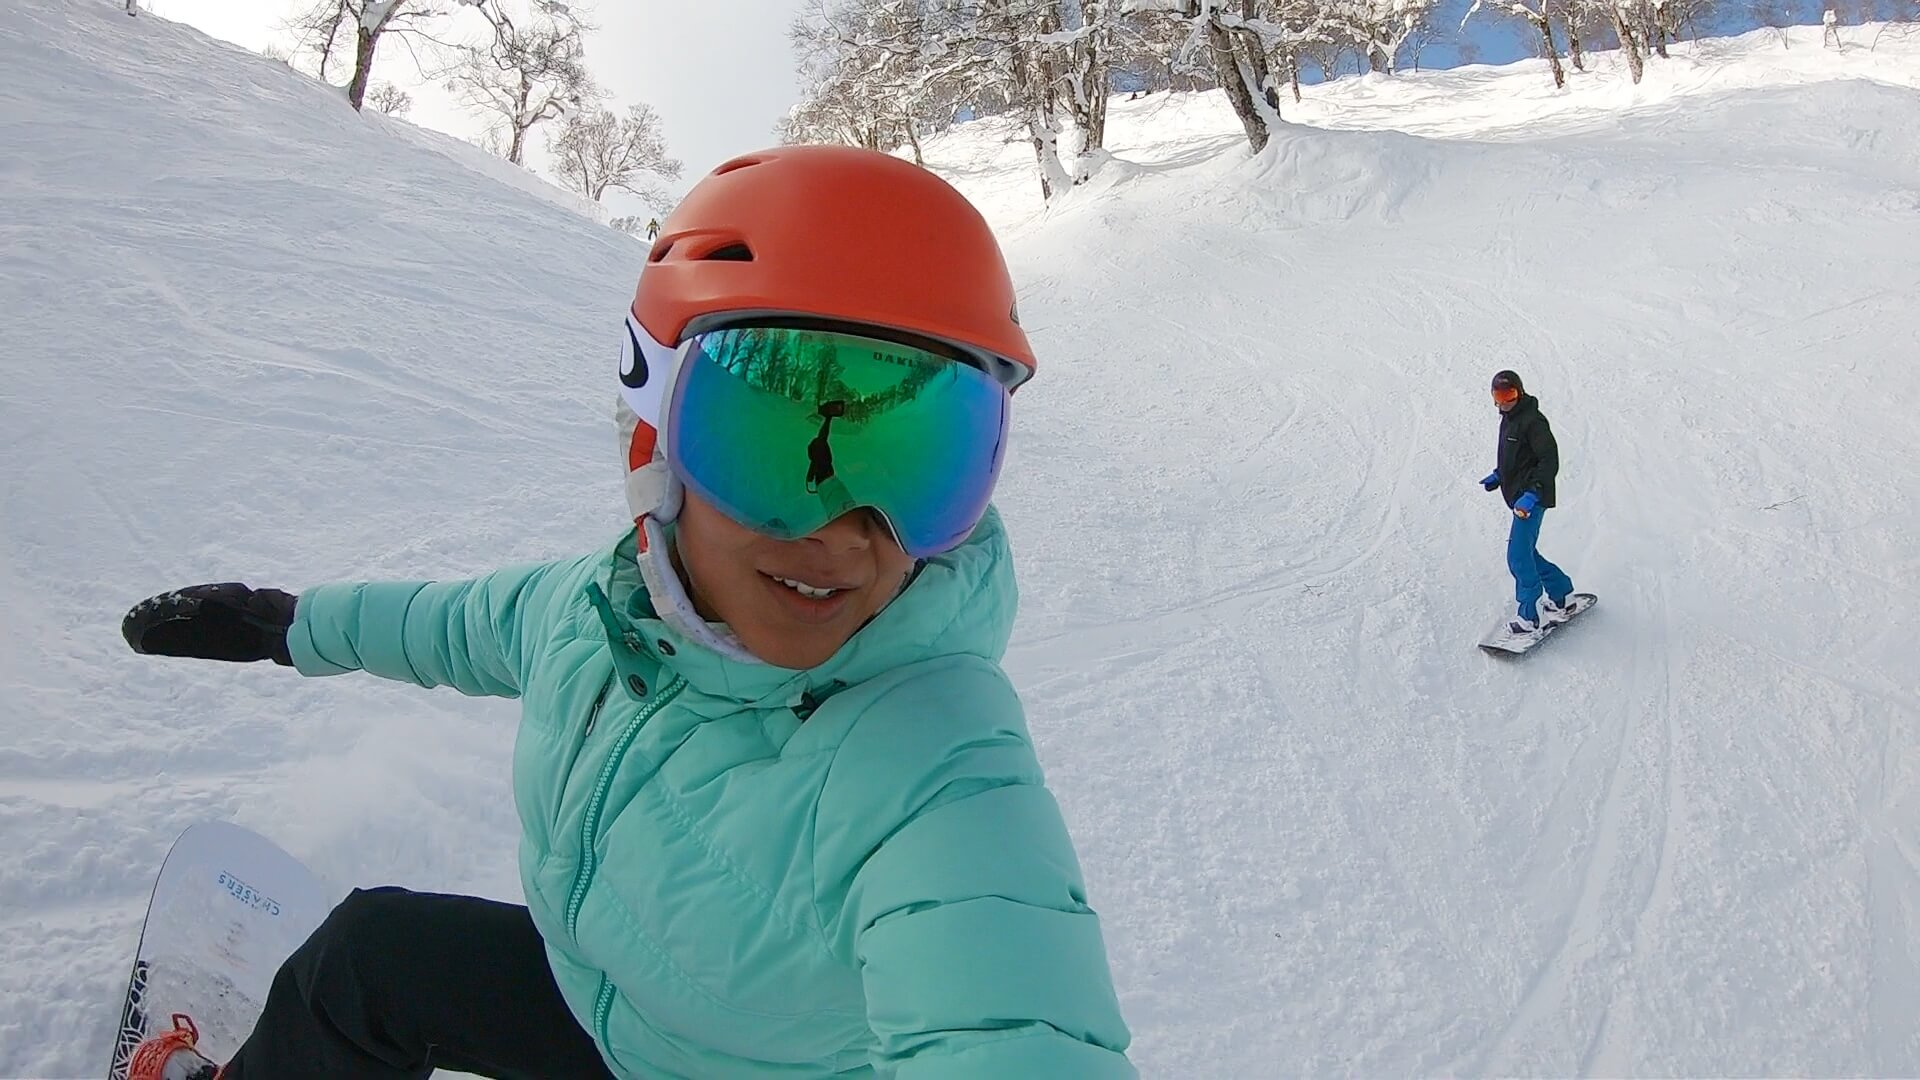 SAVAGE PANDA BOARDS IN ACTION - WE LOVE RIDING GULLIES!